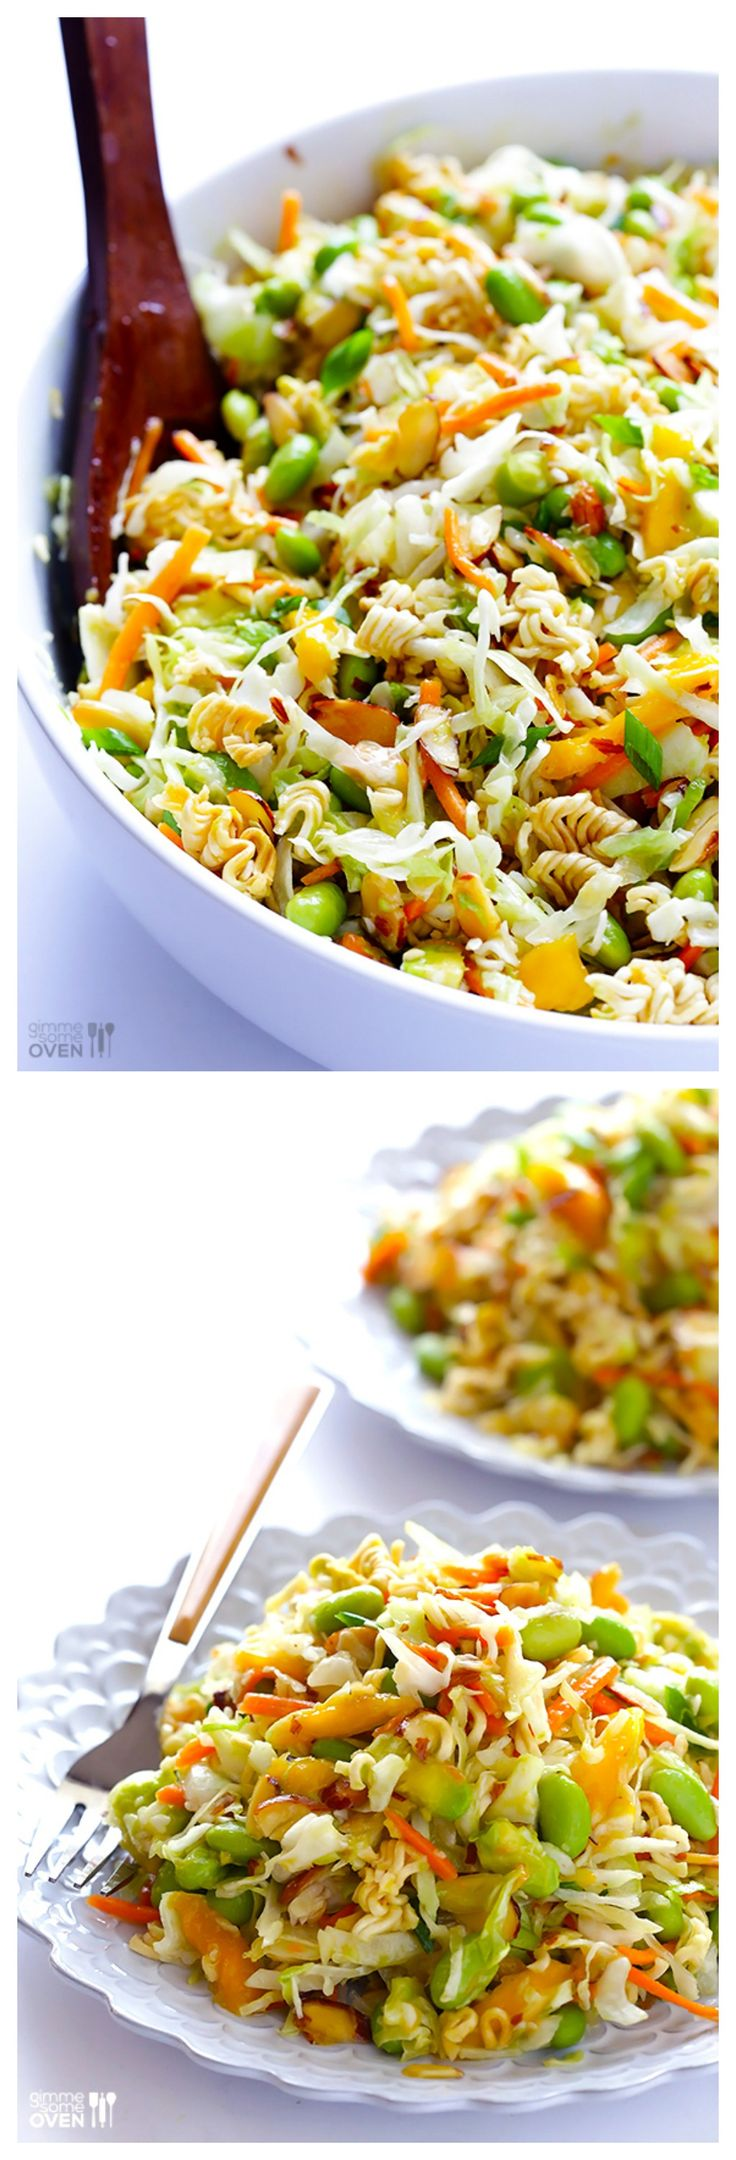 Crunchy Asian Ramen Noodle Salad -- ready to go in 10 min, and modernized with fresher ingredients! gimmesomeoven.com #salad #vegetarian: Ramen Noodles Salad, Asian Ramen, Ramen Noodle Salad, Salad Recipe, Asian Noodles, Summer Salad, Noodle Salads, Salad Vegetarian, Crunchi Asian